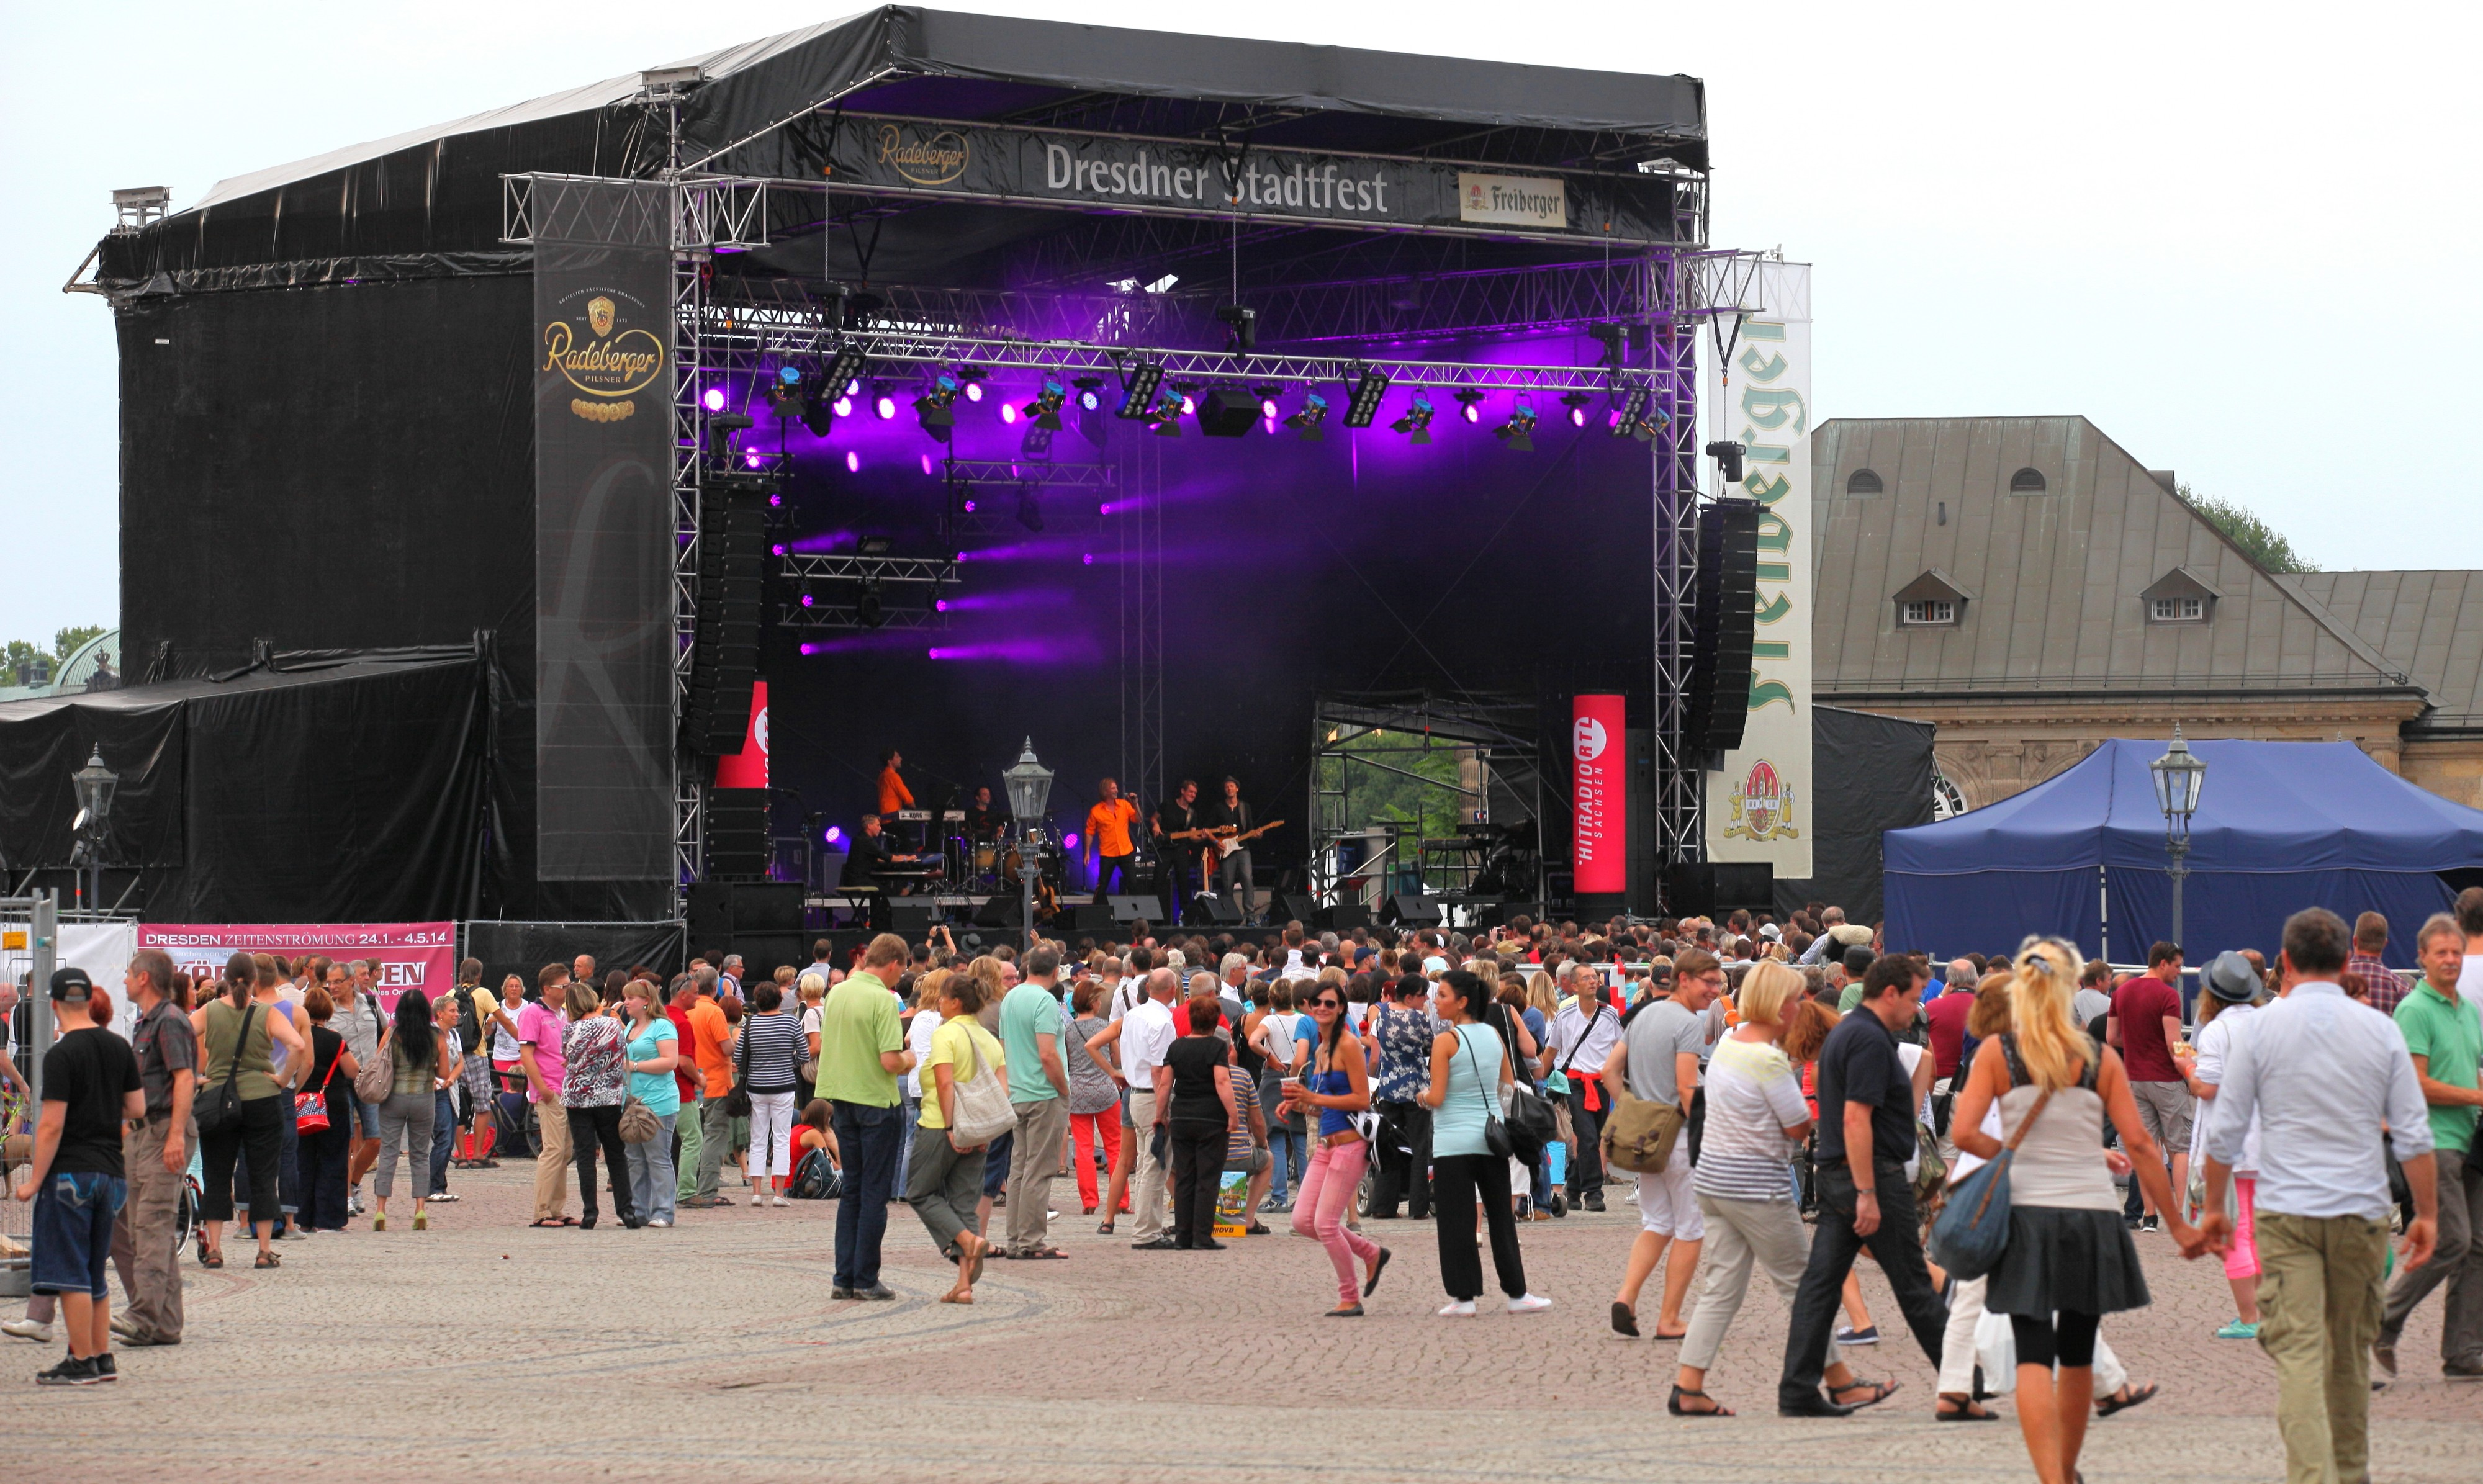 Dresdner Stadfest, Germany, Europe, August 2013, picture 60